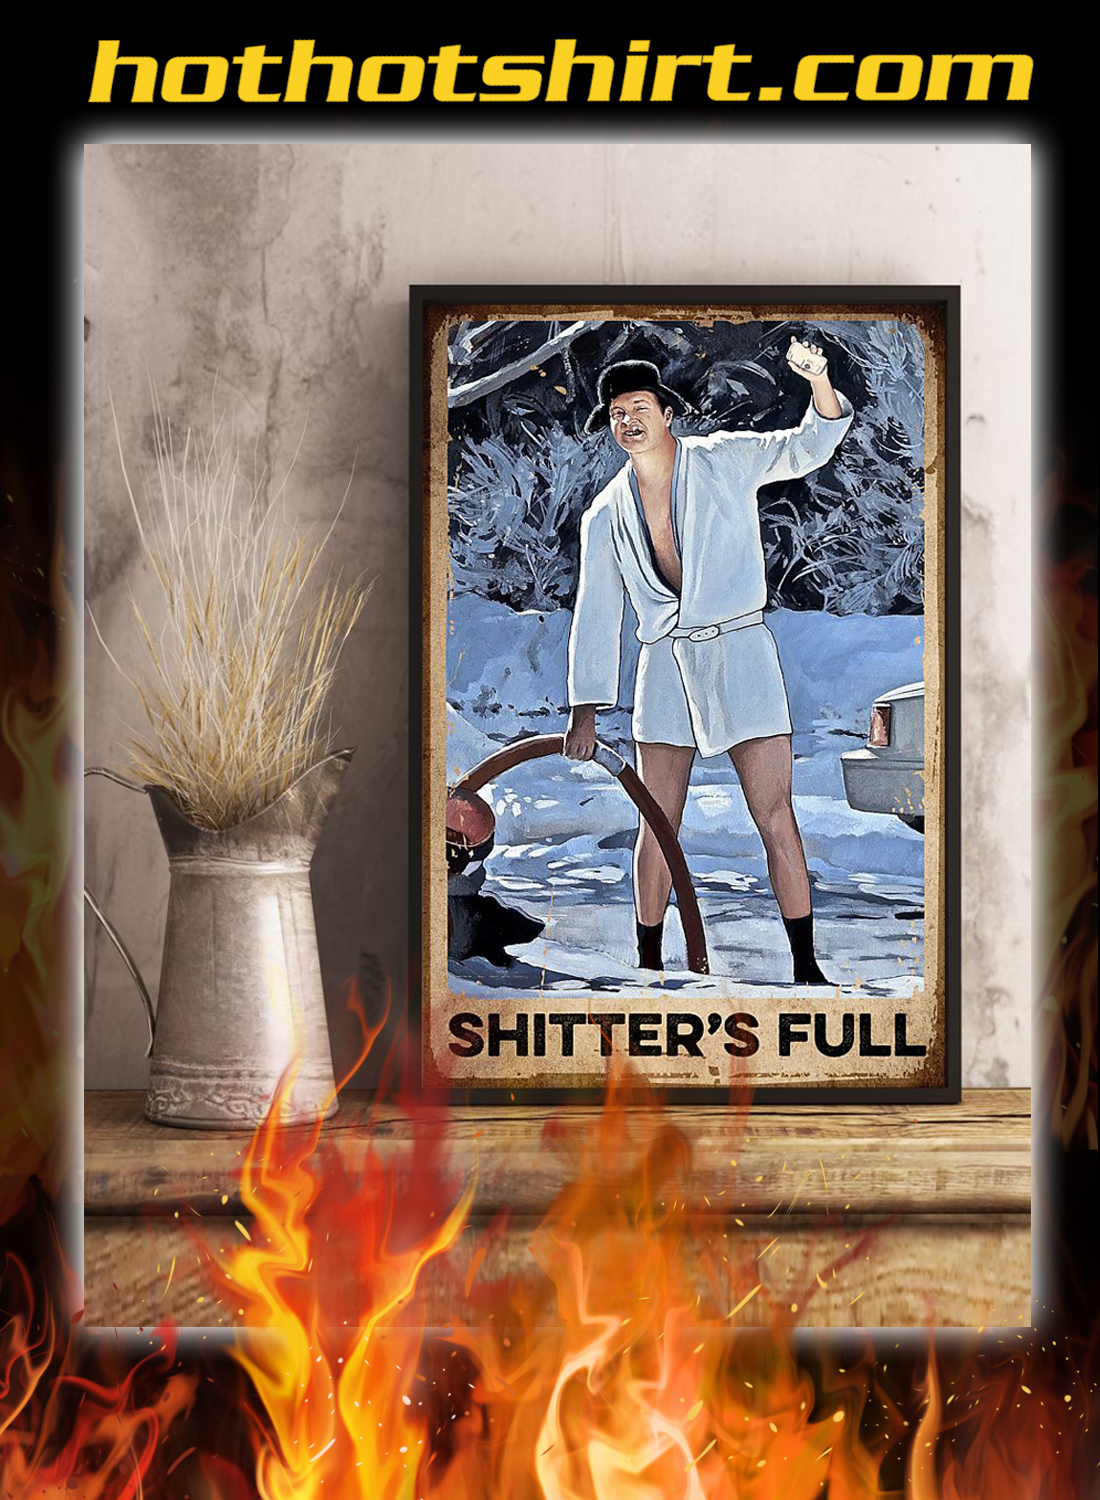 Shitter's full christmas vacation poster 3